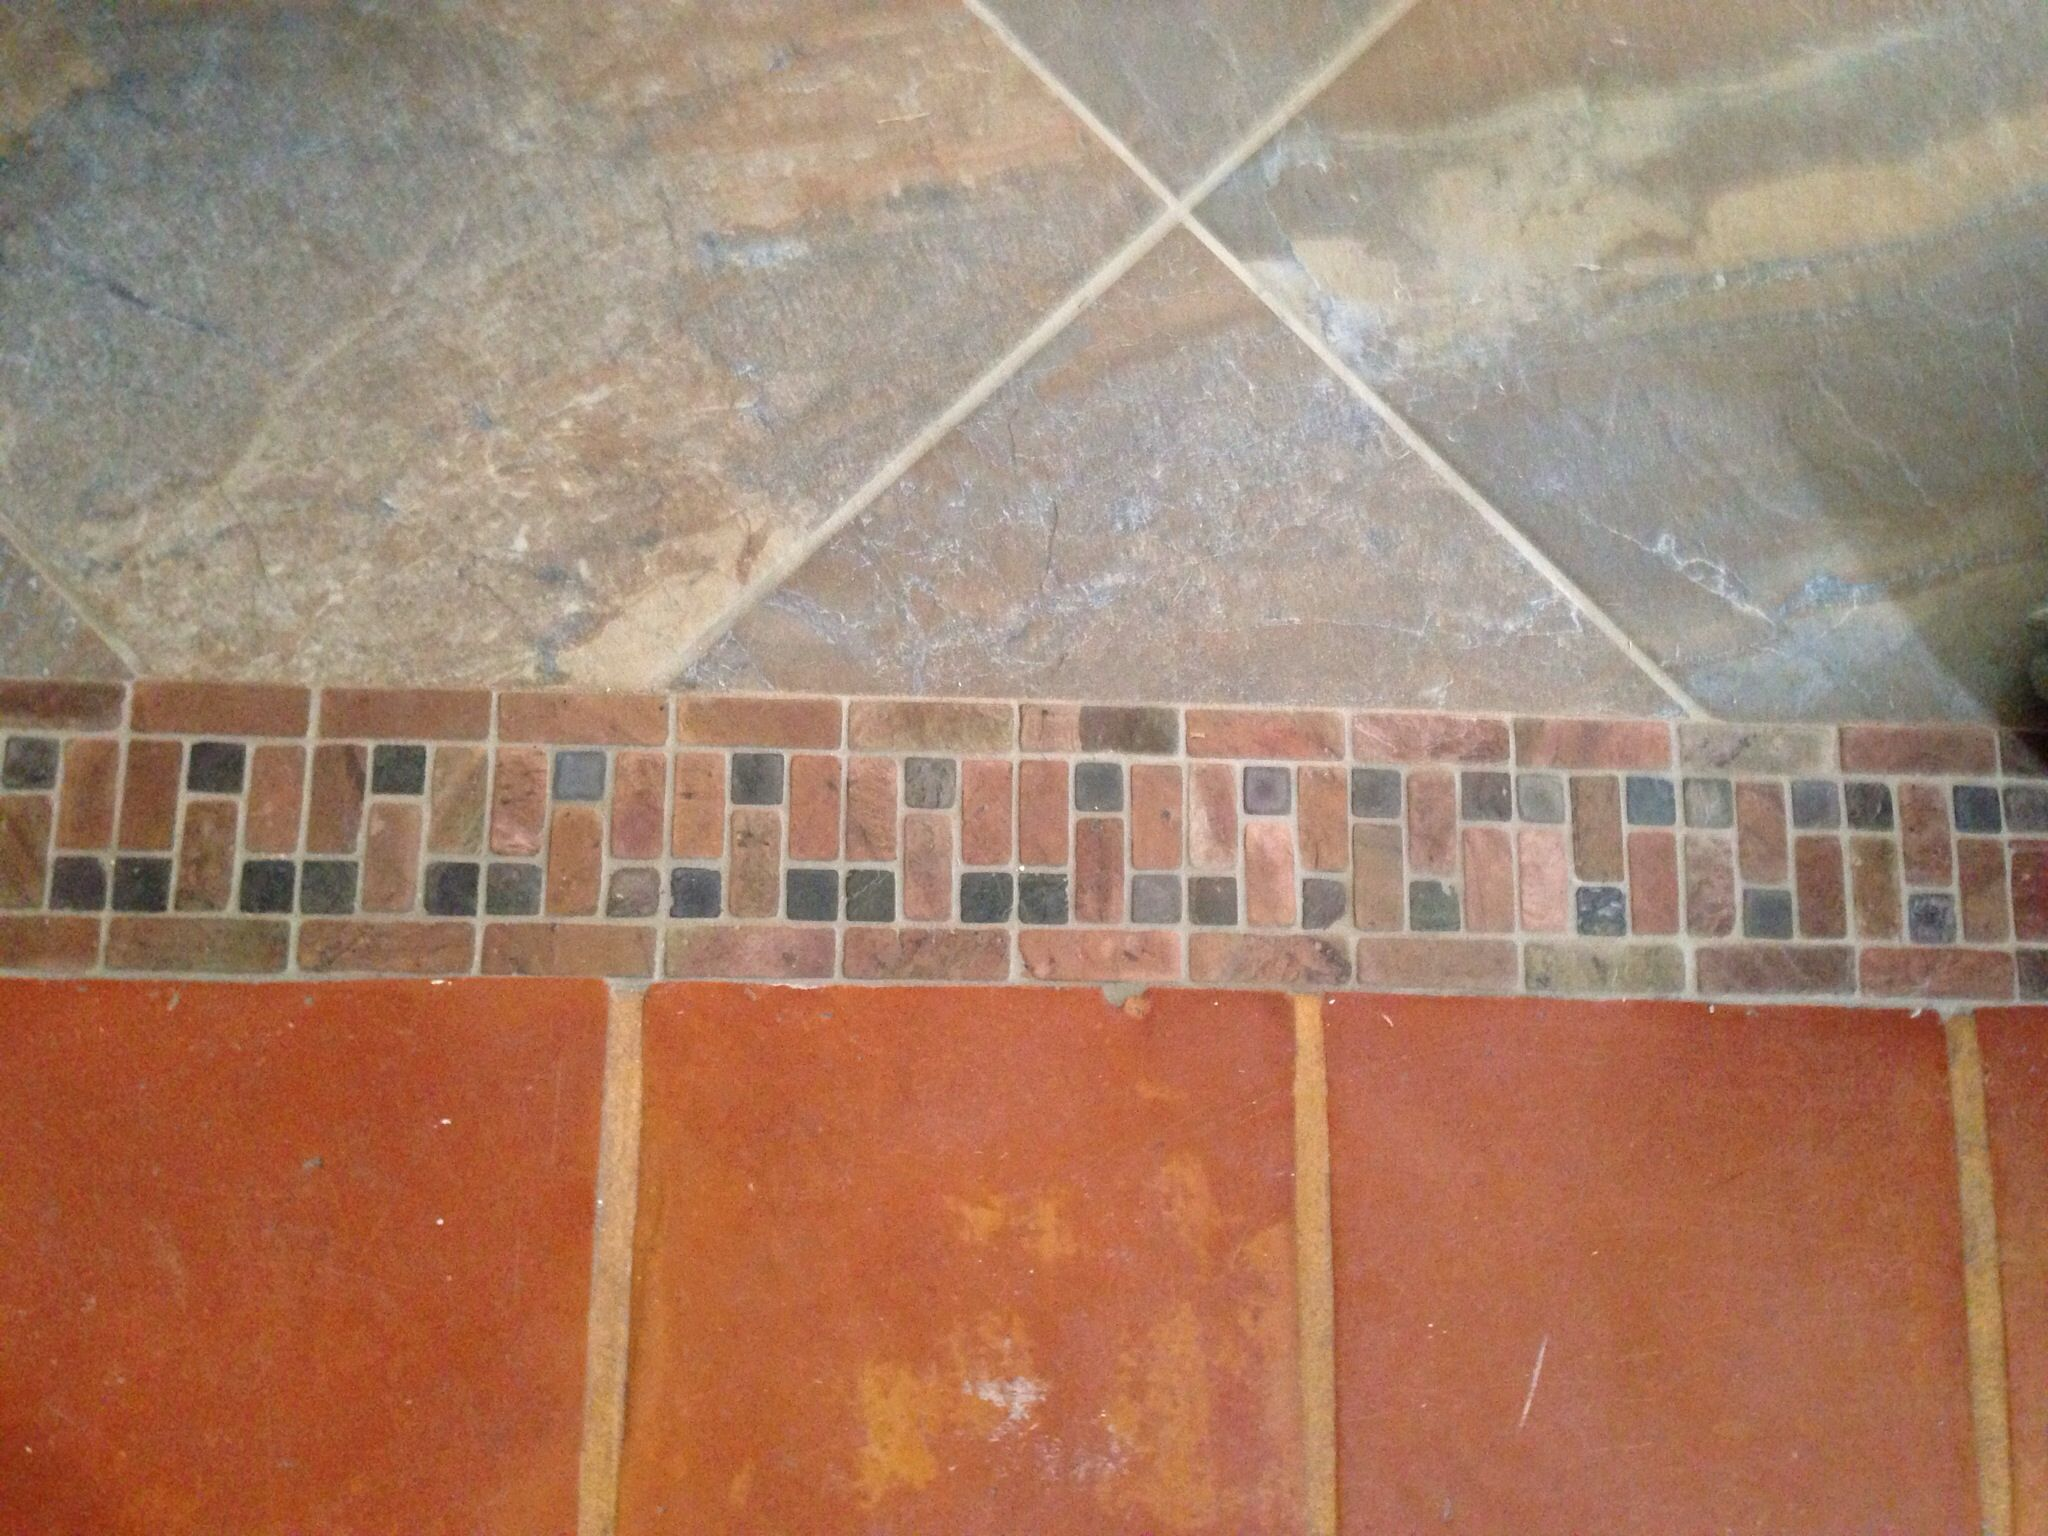 Floor tile transition idea to go from one tile to another using a ...